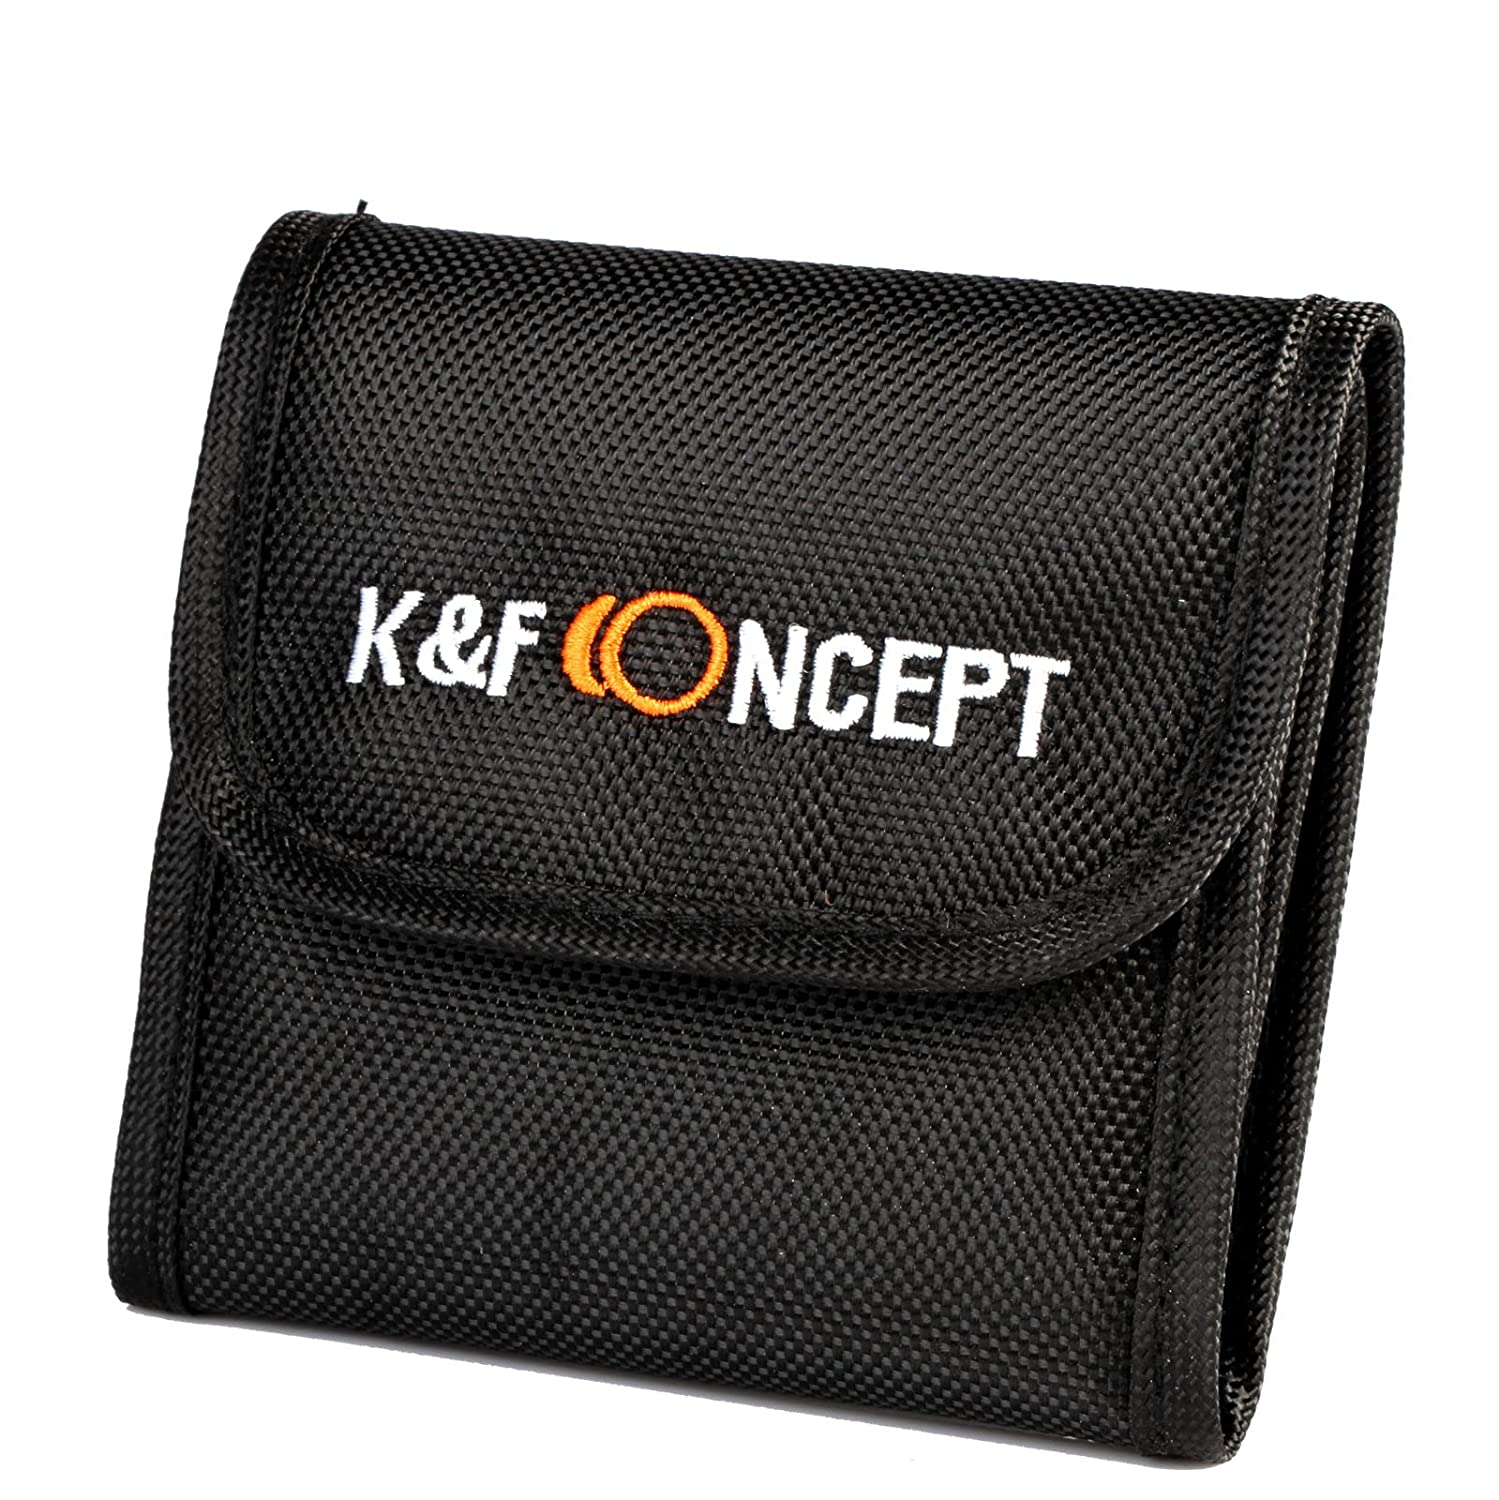 Filter Pouch K/&F Concept Lens Filter Case 3 Pocket Pouch Lens Accessory for Digital Camera Square or ND Filters